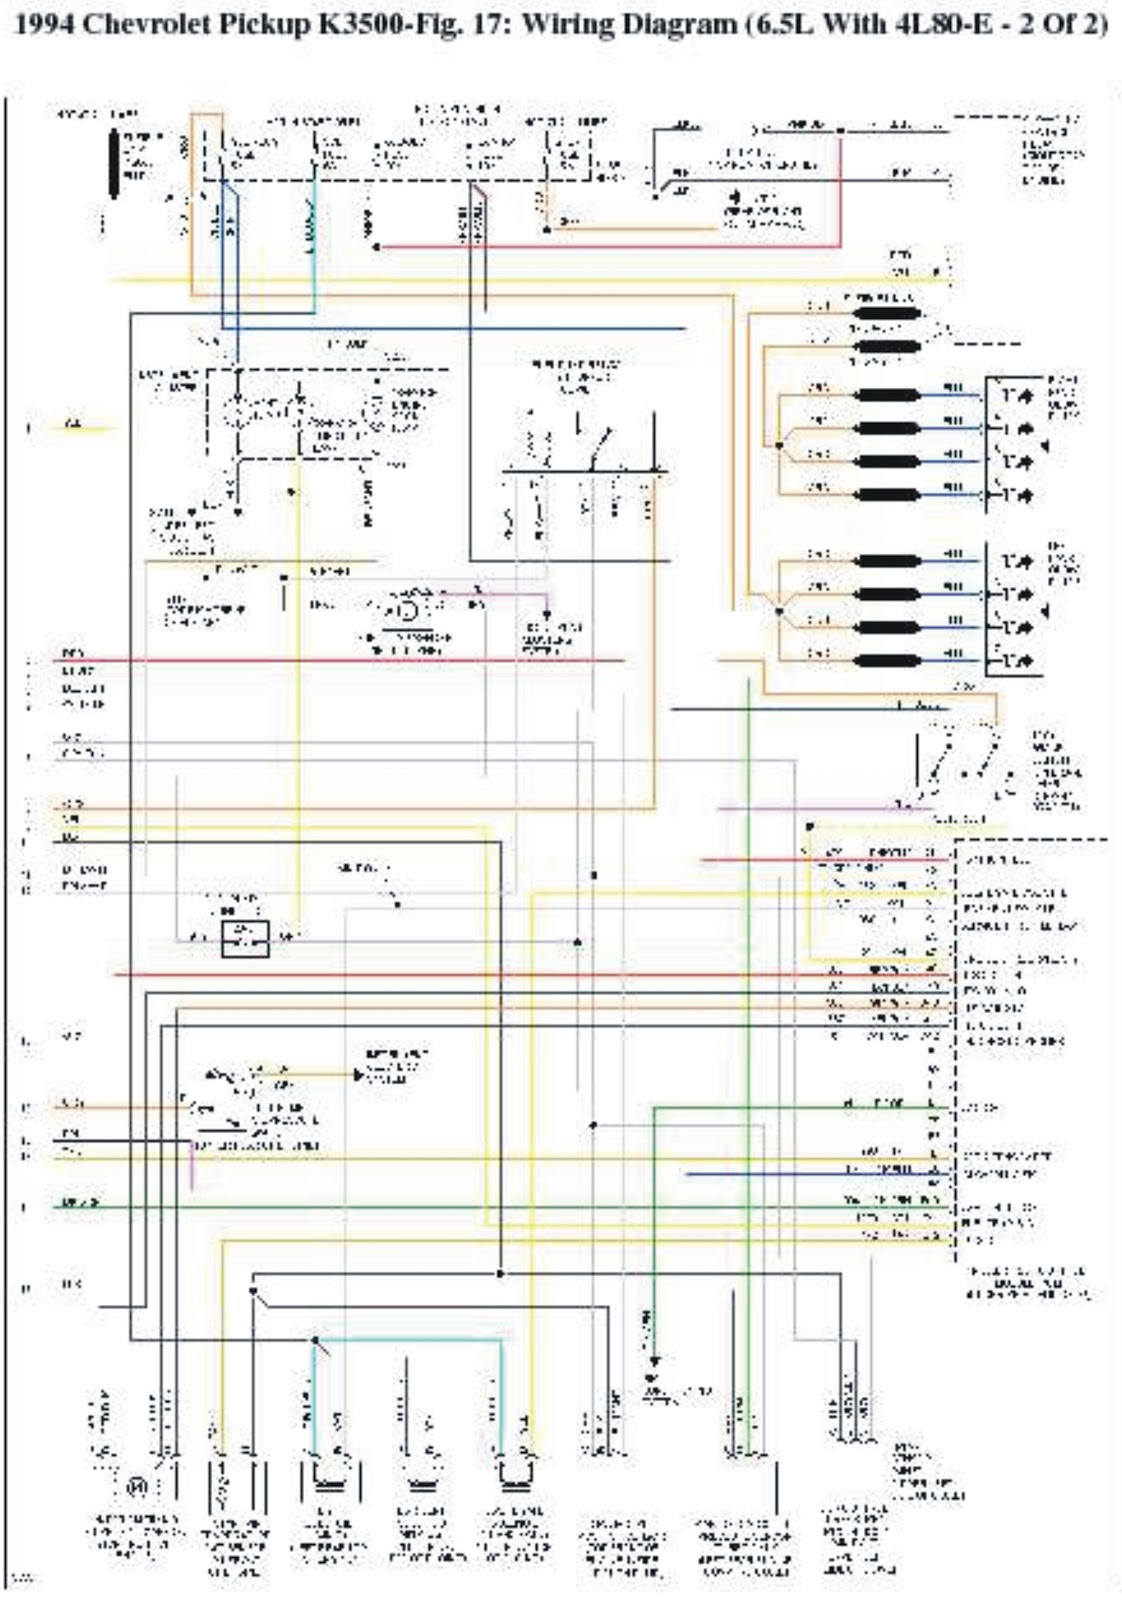 Beautiful 1987 7.4 Chevy P30 Southwind Start Relay Diagram ...